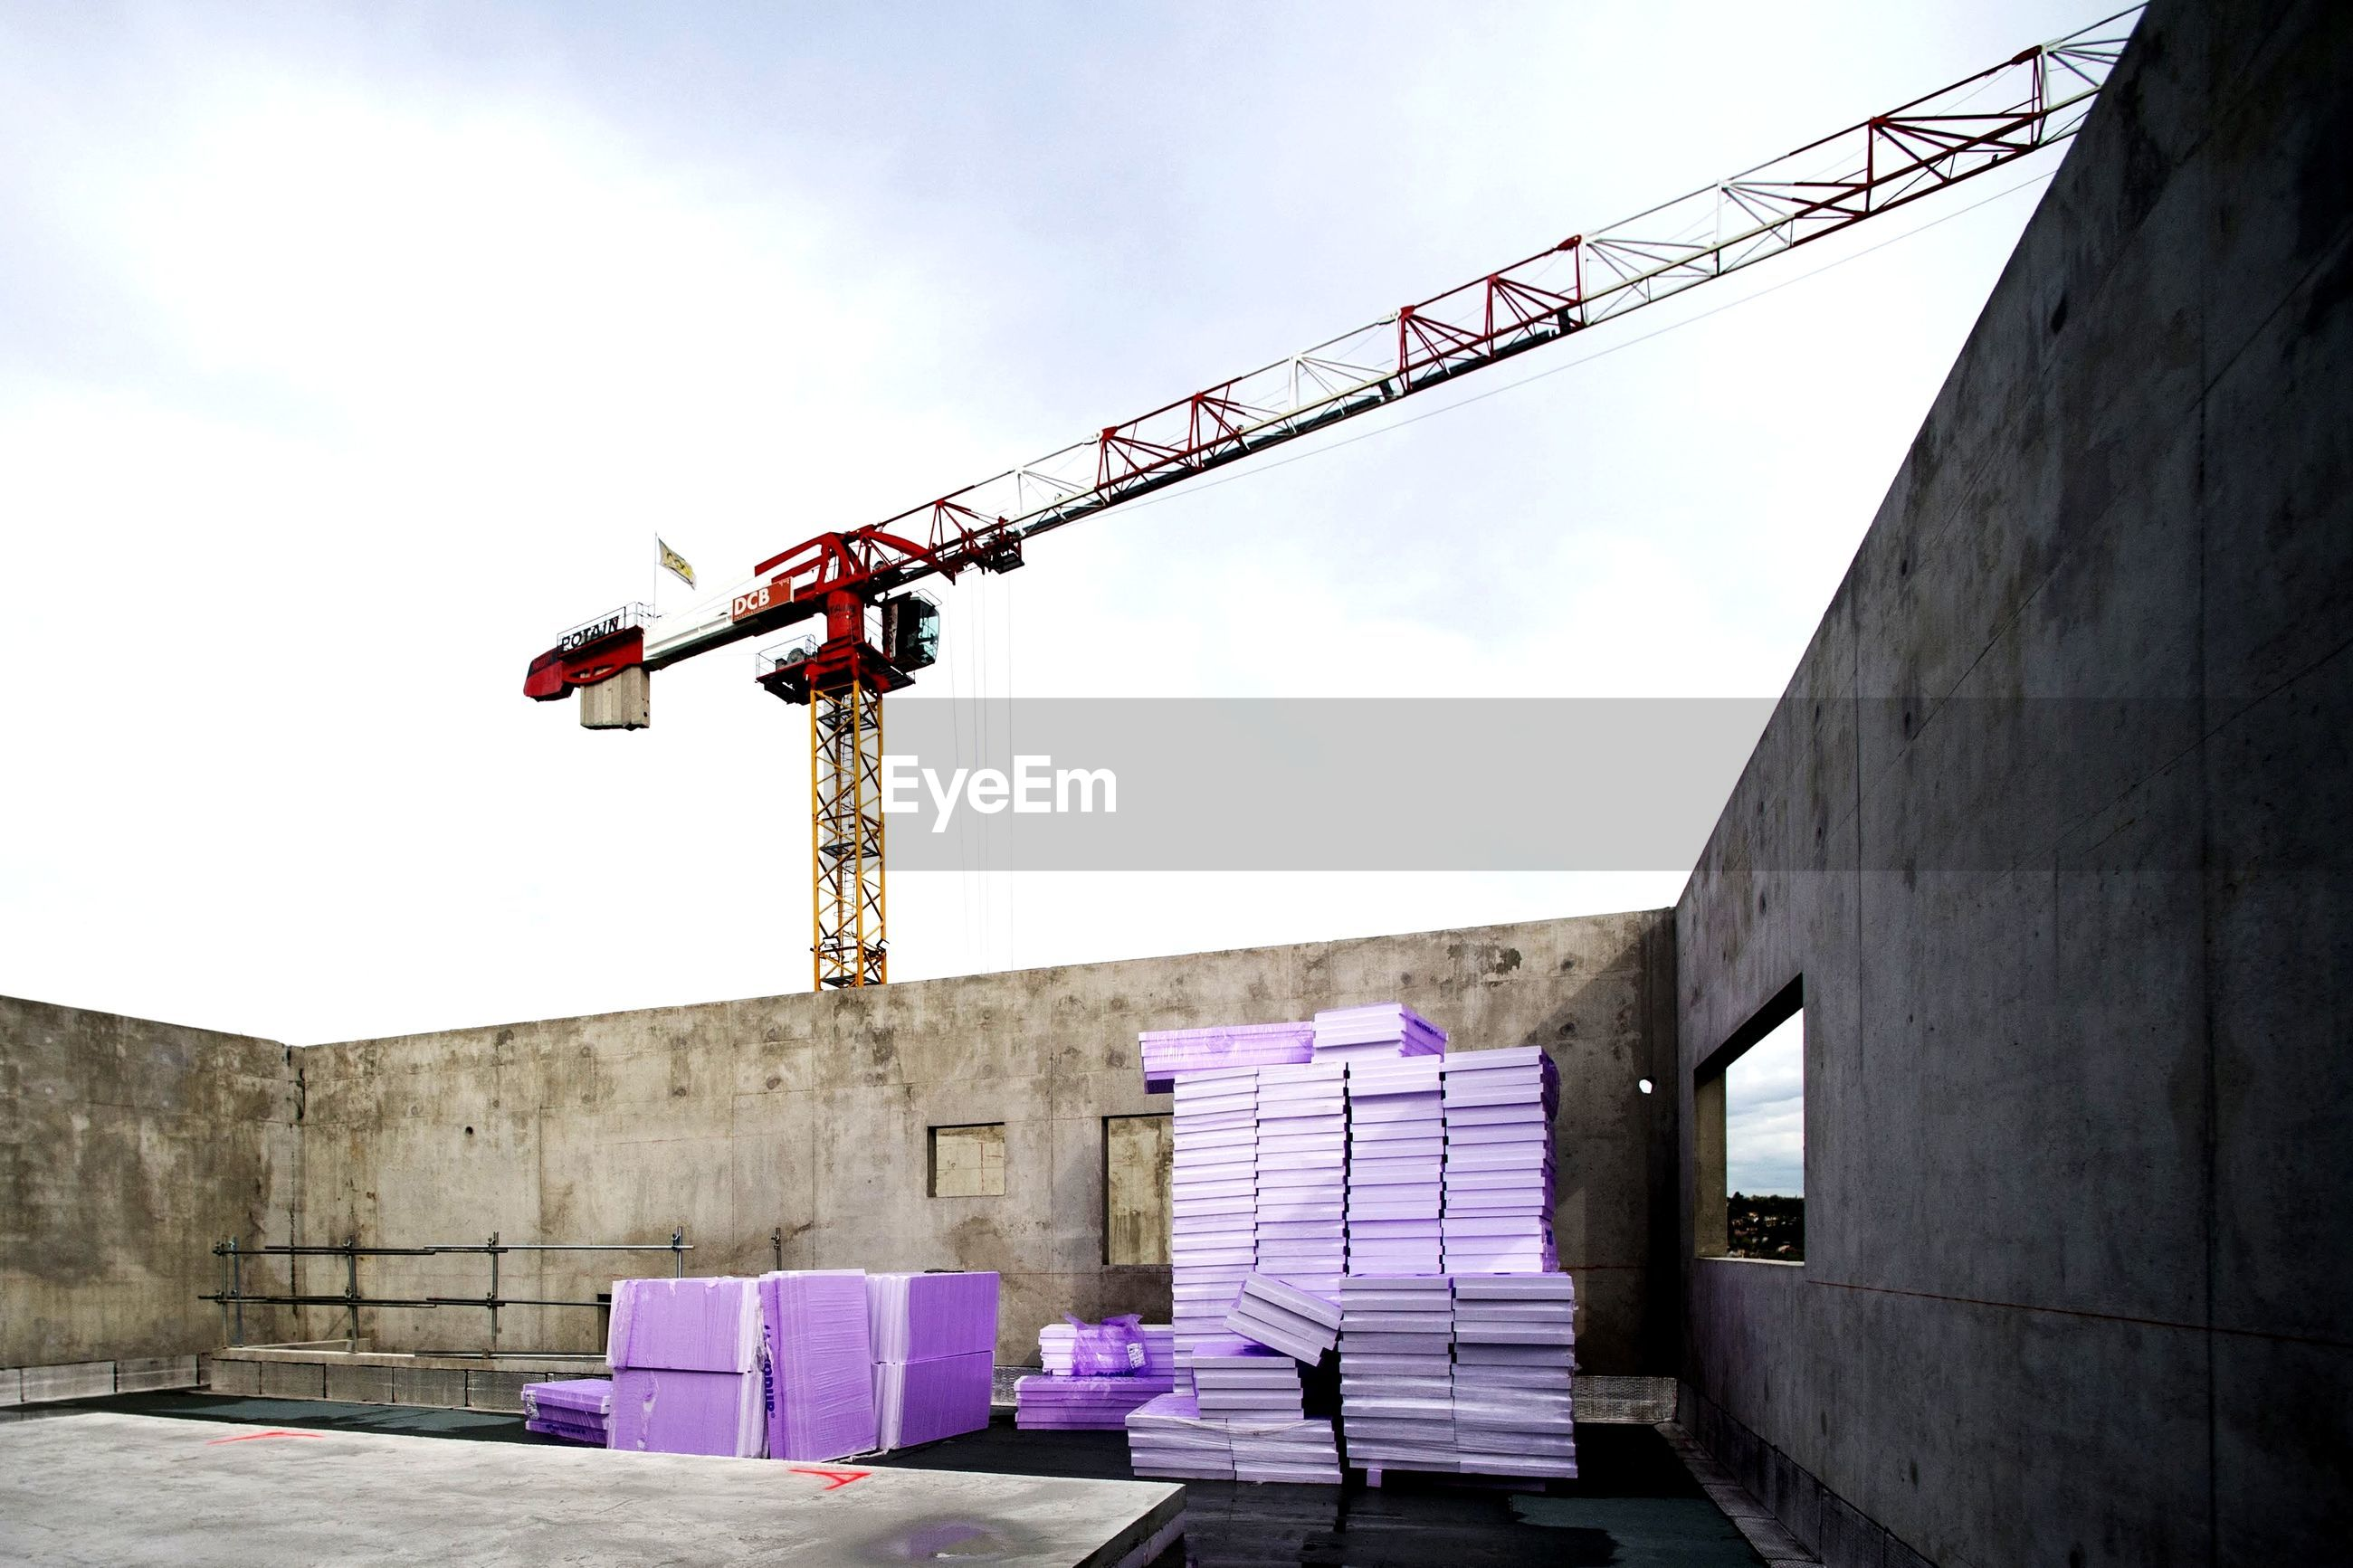 LOW ANGLE VIEW OF CRANE AGAINST BUILDING WALL